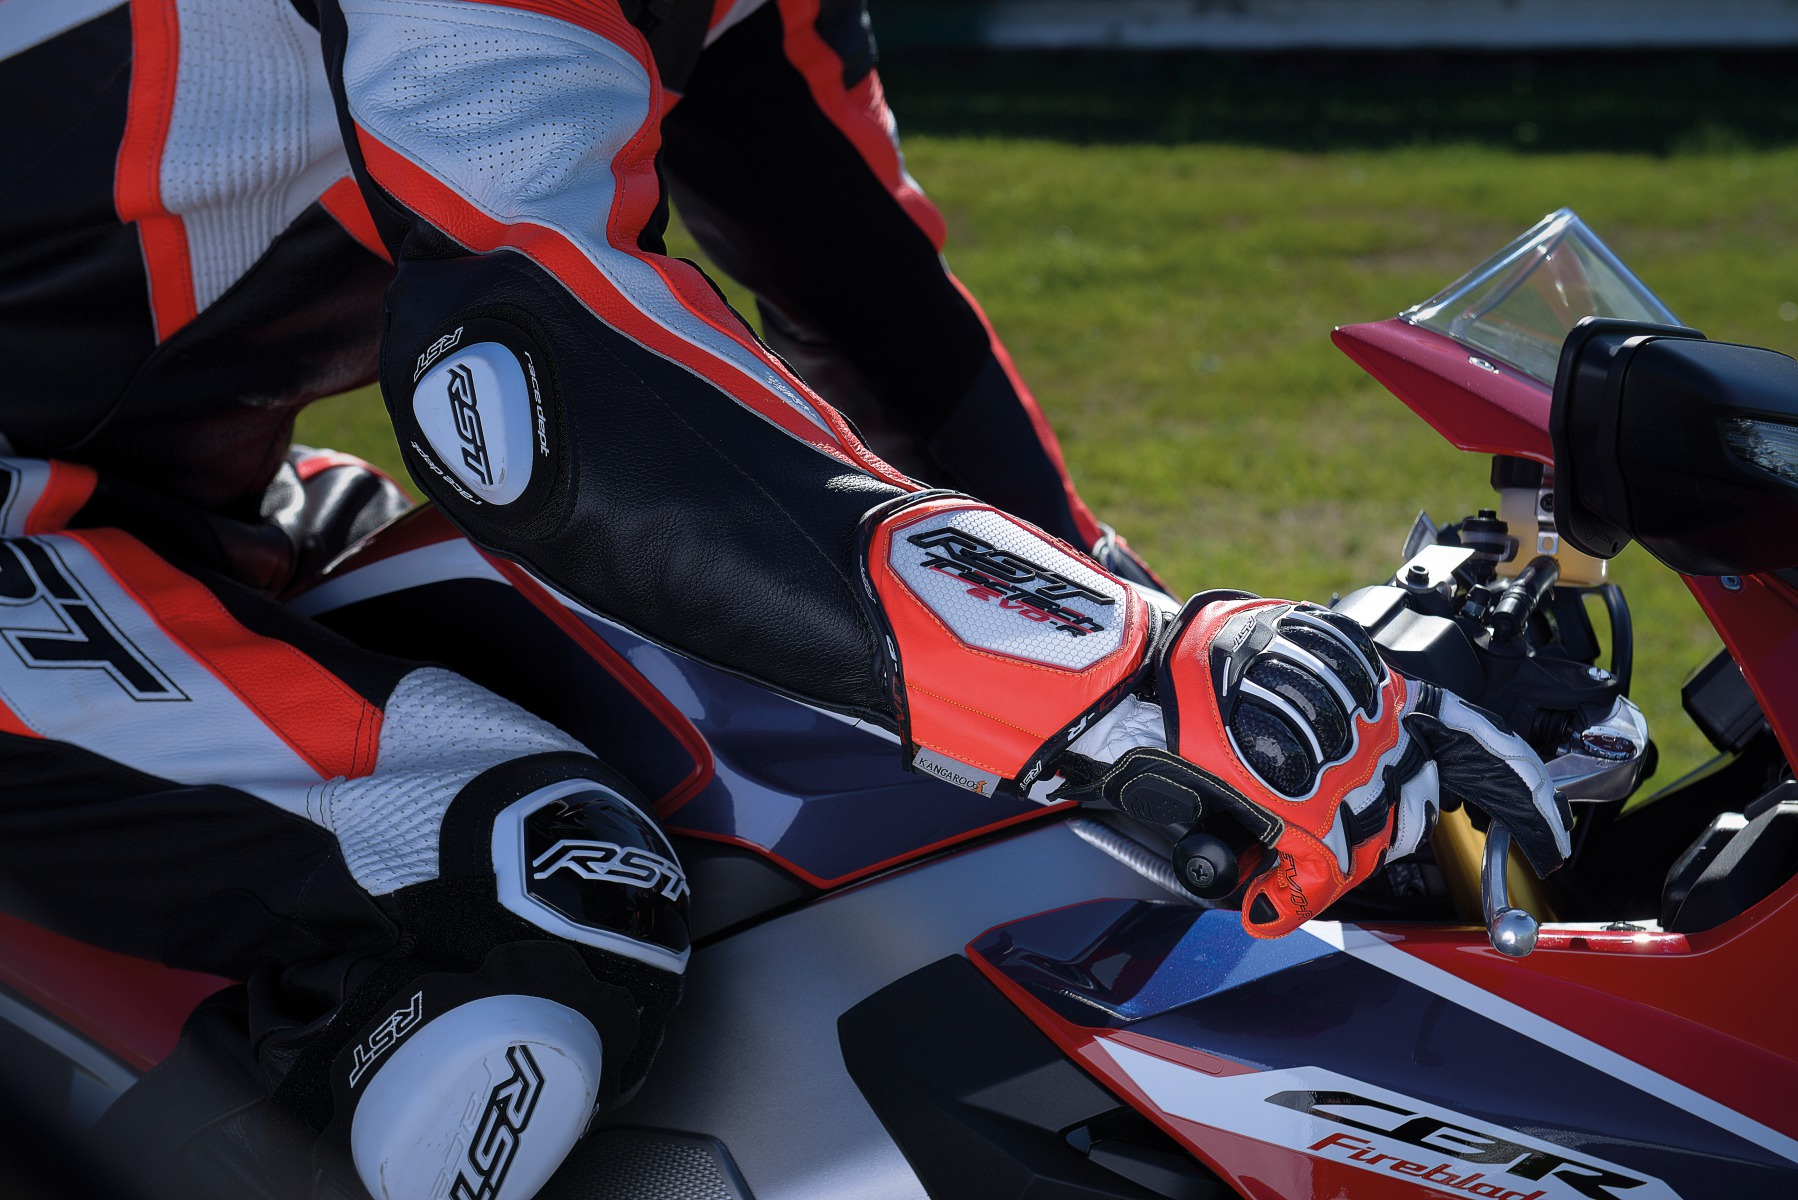 102092-rst-tractech-evo-r-glove-flo-red-lifestyle-01